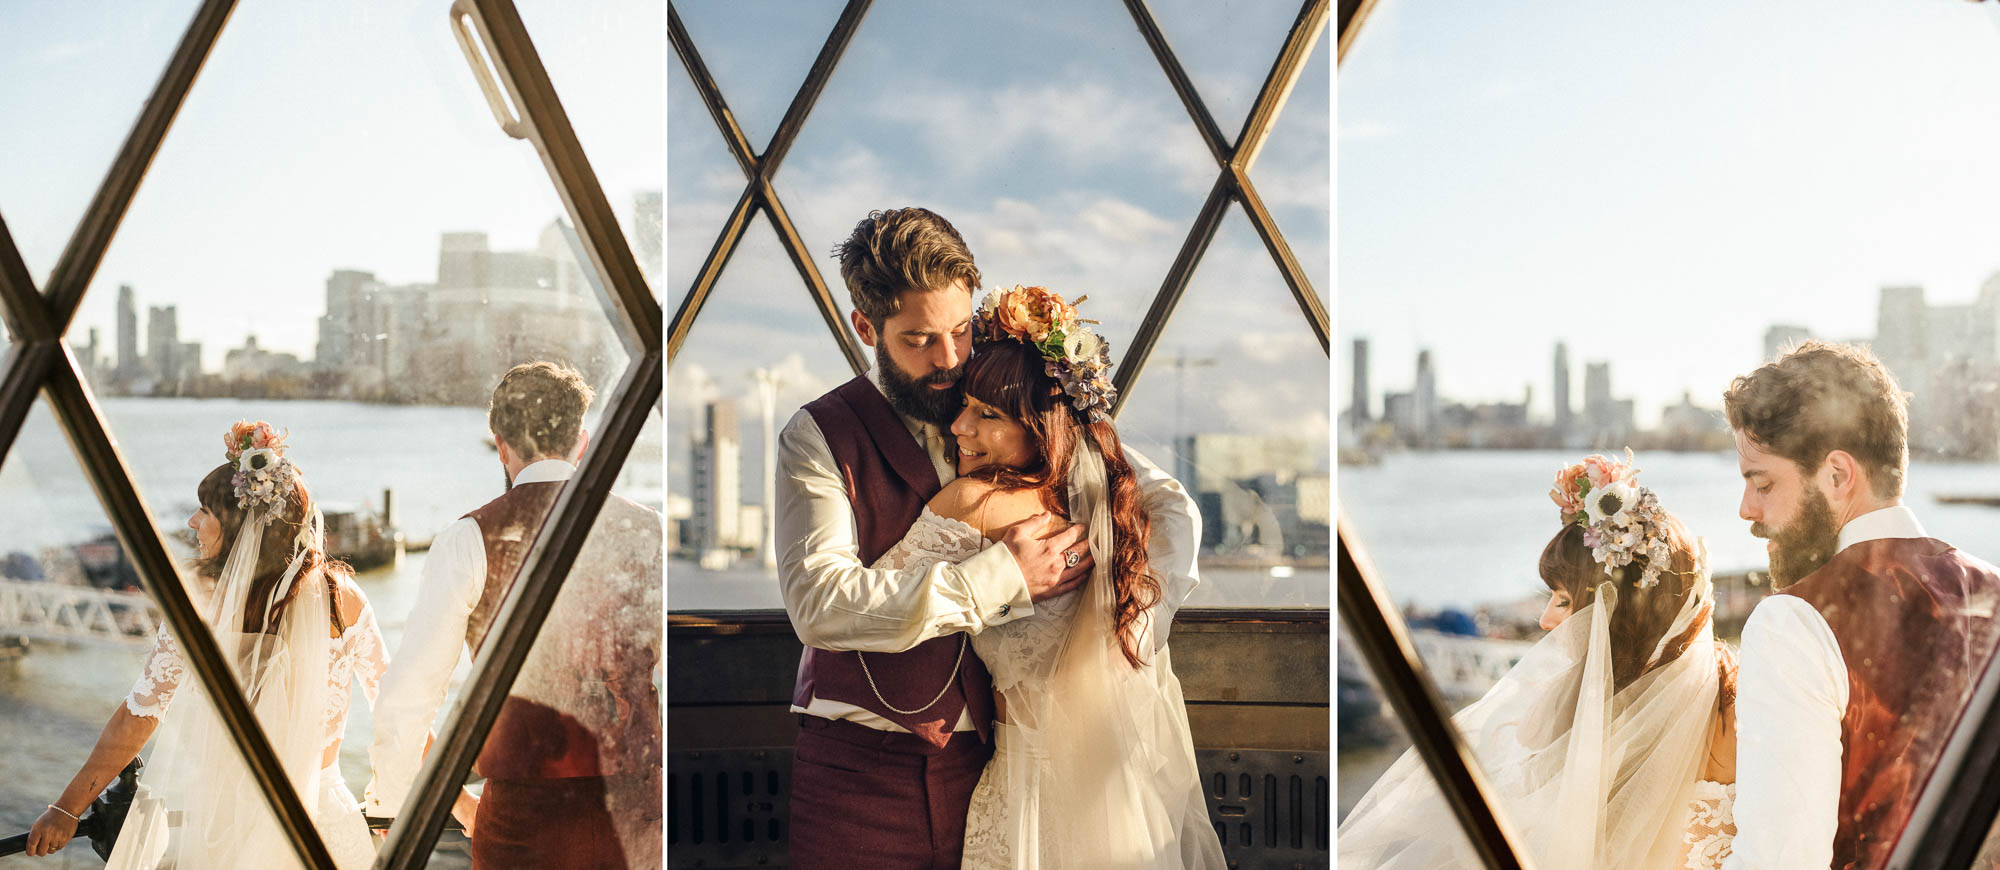 Festival Style Bride and Groom in Trinity Buoy Wharf Lighthouse captured by Fun Quirky Relaxed Surrey Wedding Photographer - Colourful & Natural wedding photography